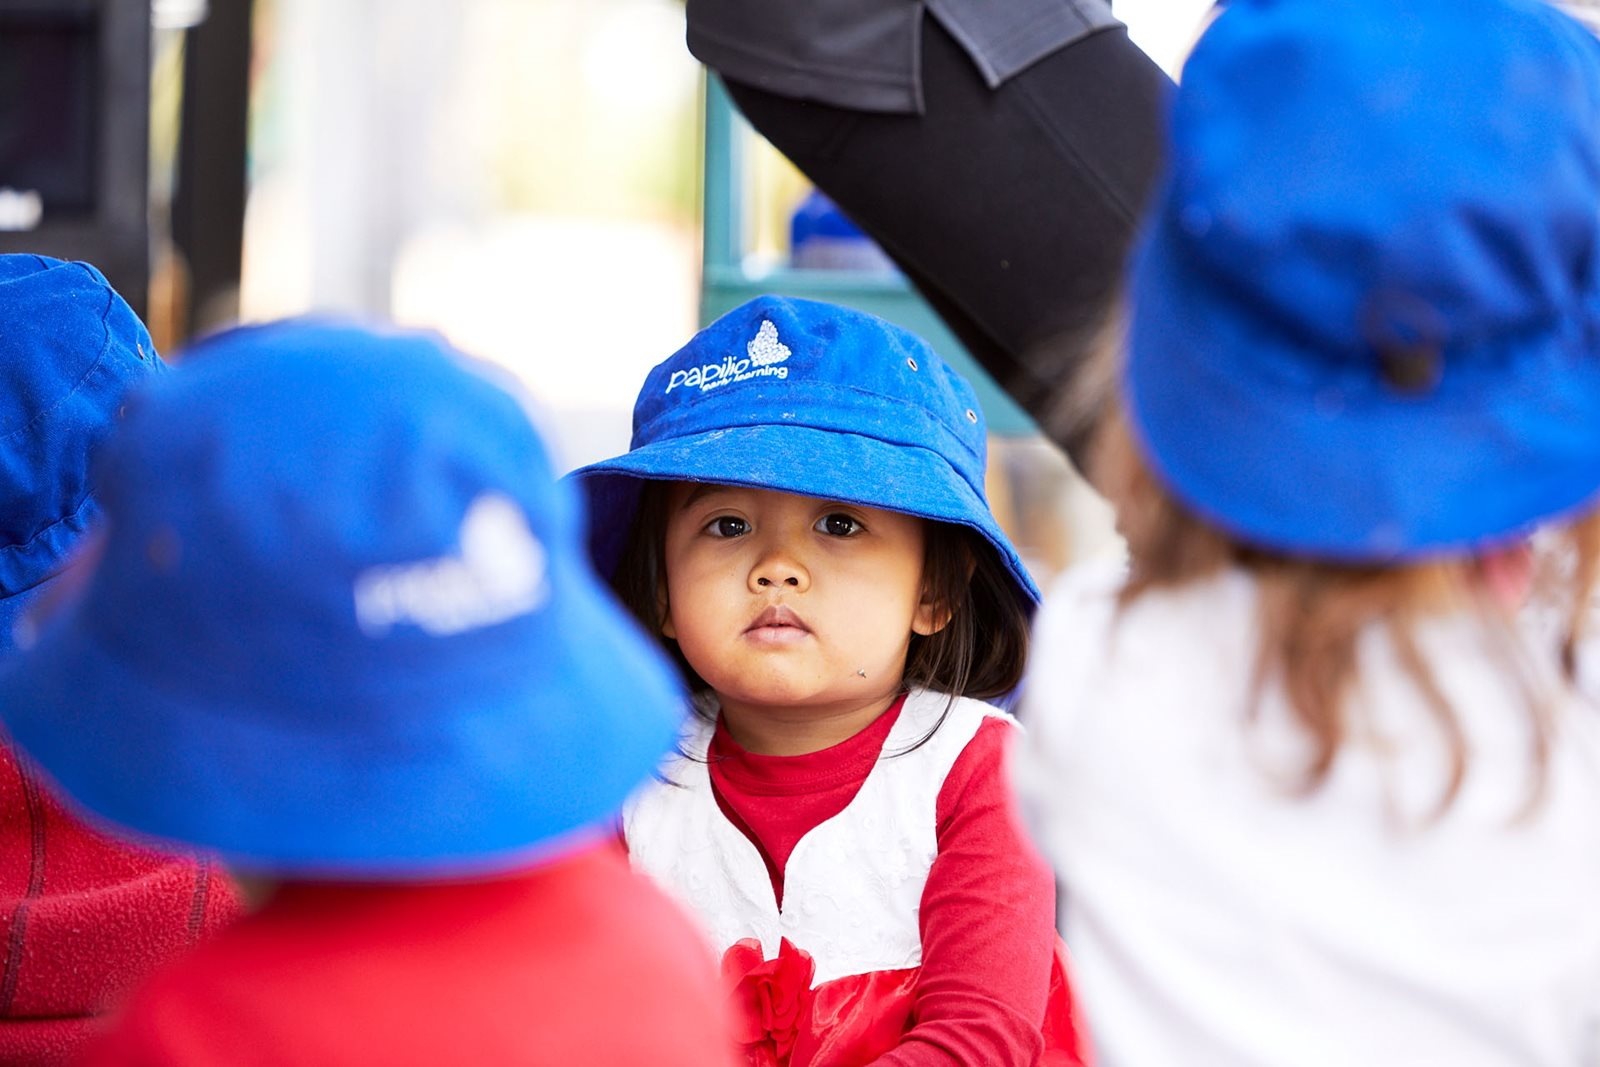 Young child wearing papilio early learning hat